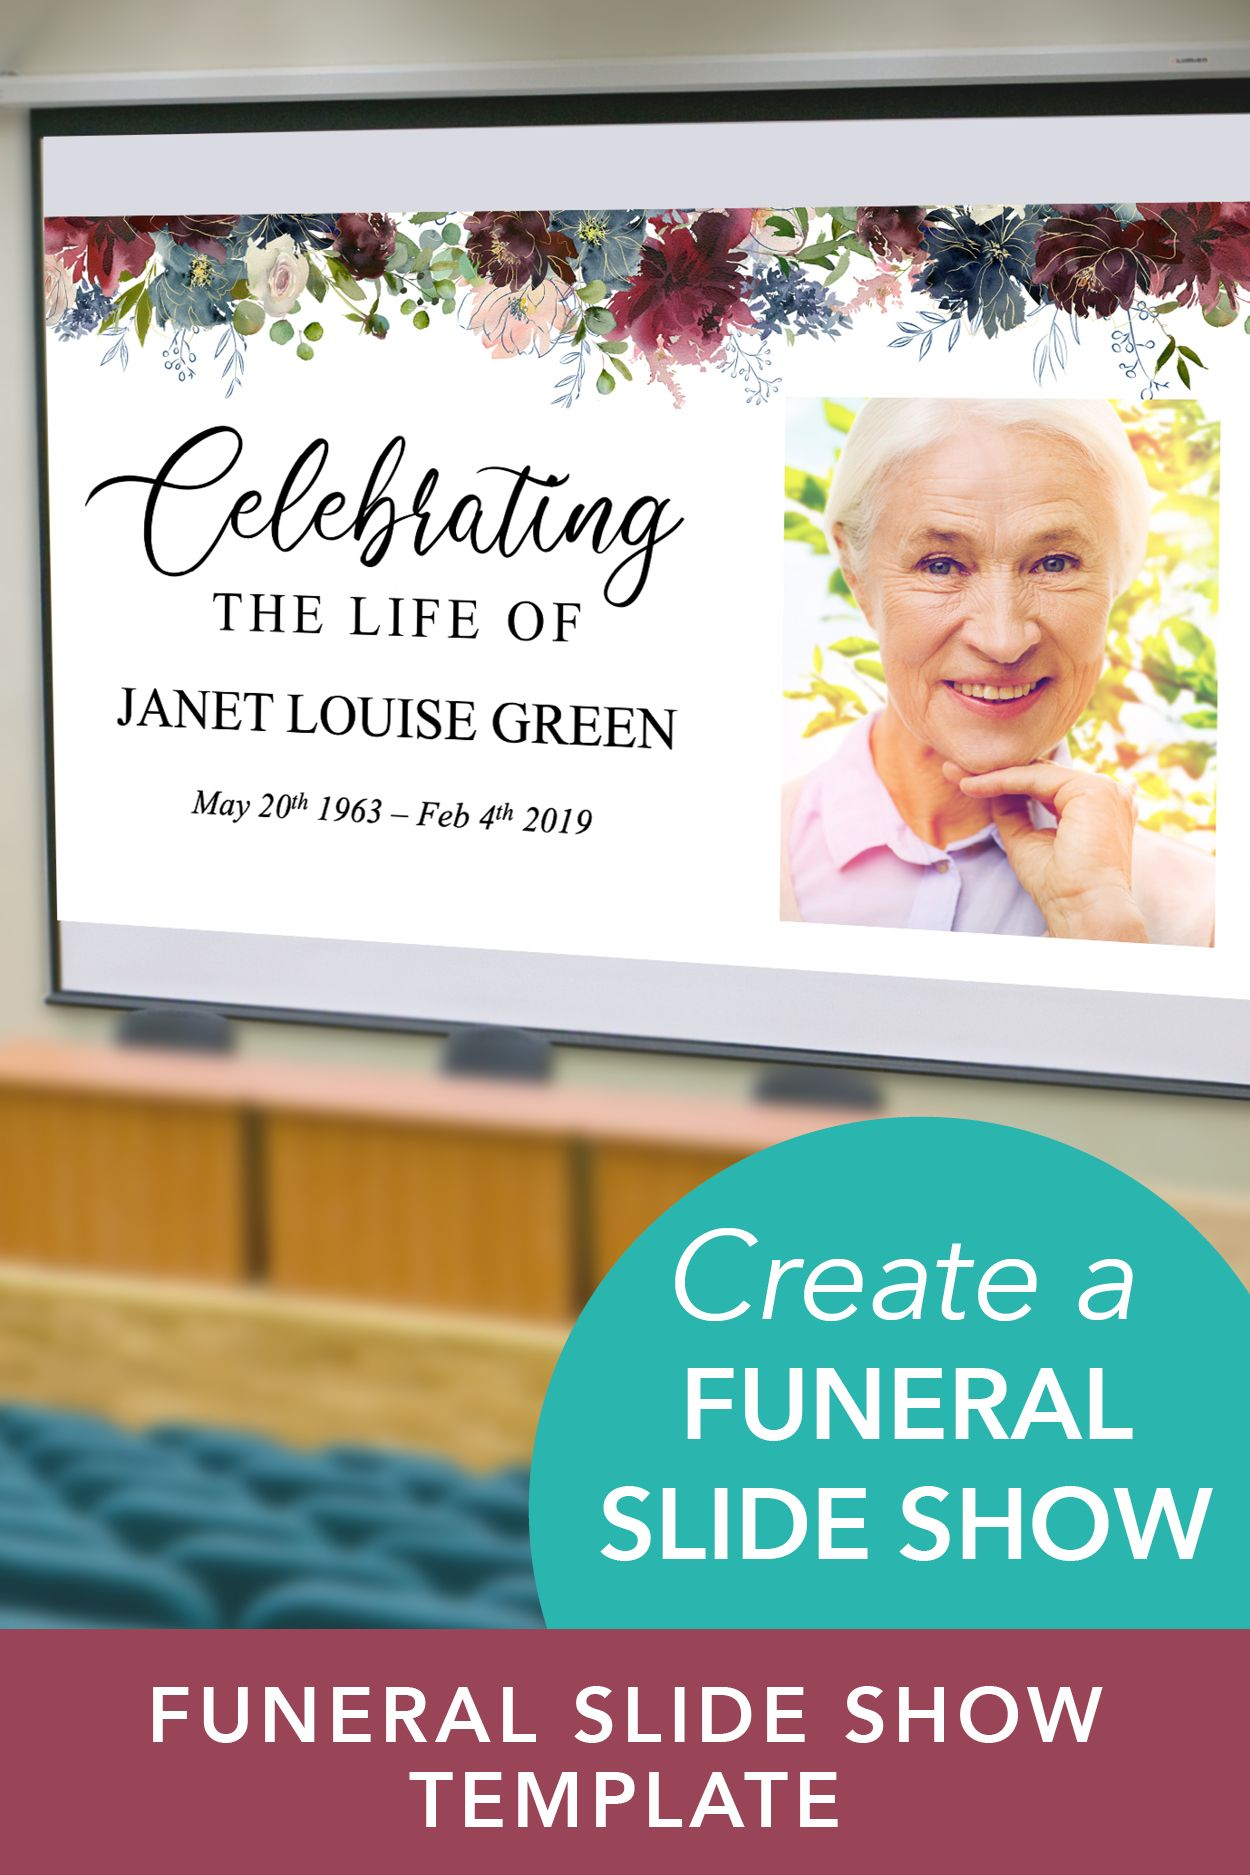 Celebration Of Life Powerpoint Template Funeral Slideshow Etsy Celebration Of Life Funeral Templates Funeral Program Template In loving memory powerpoint template